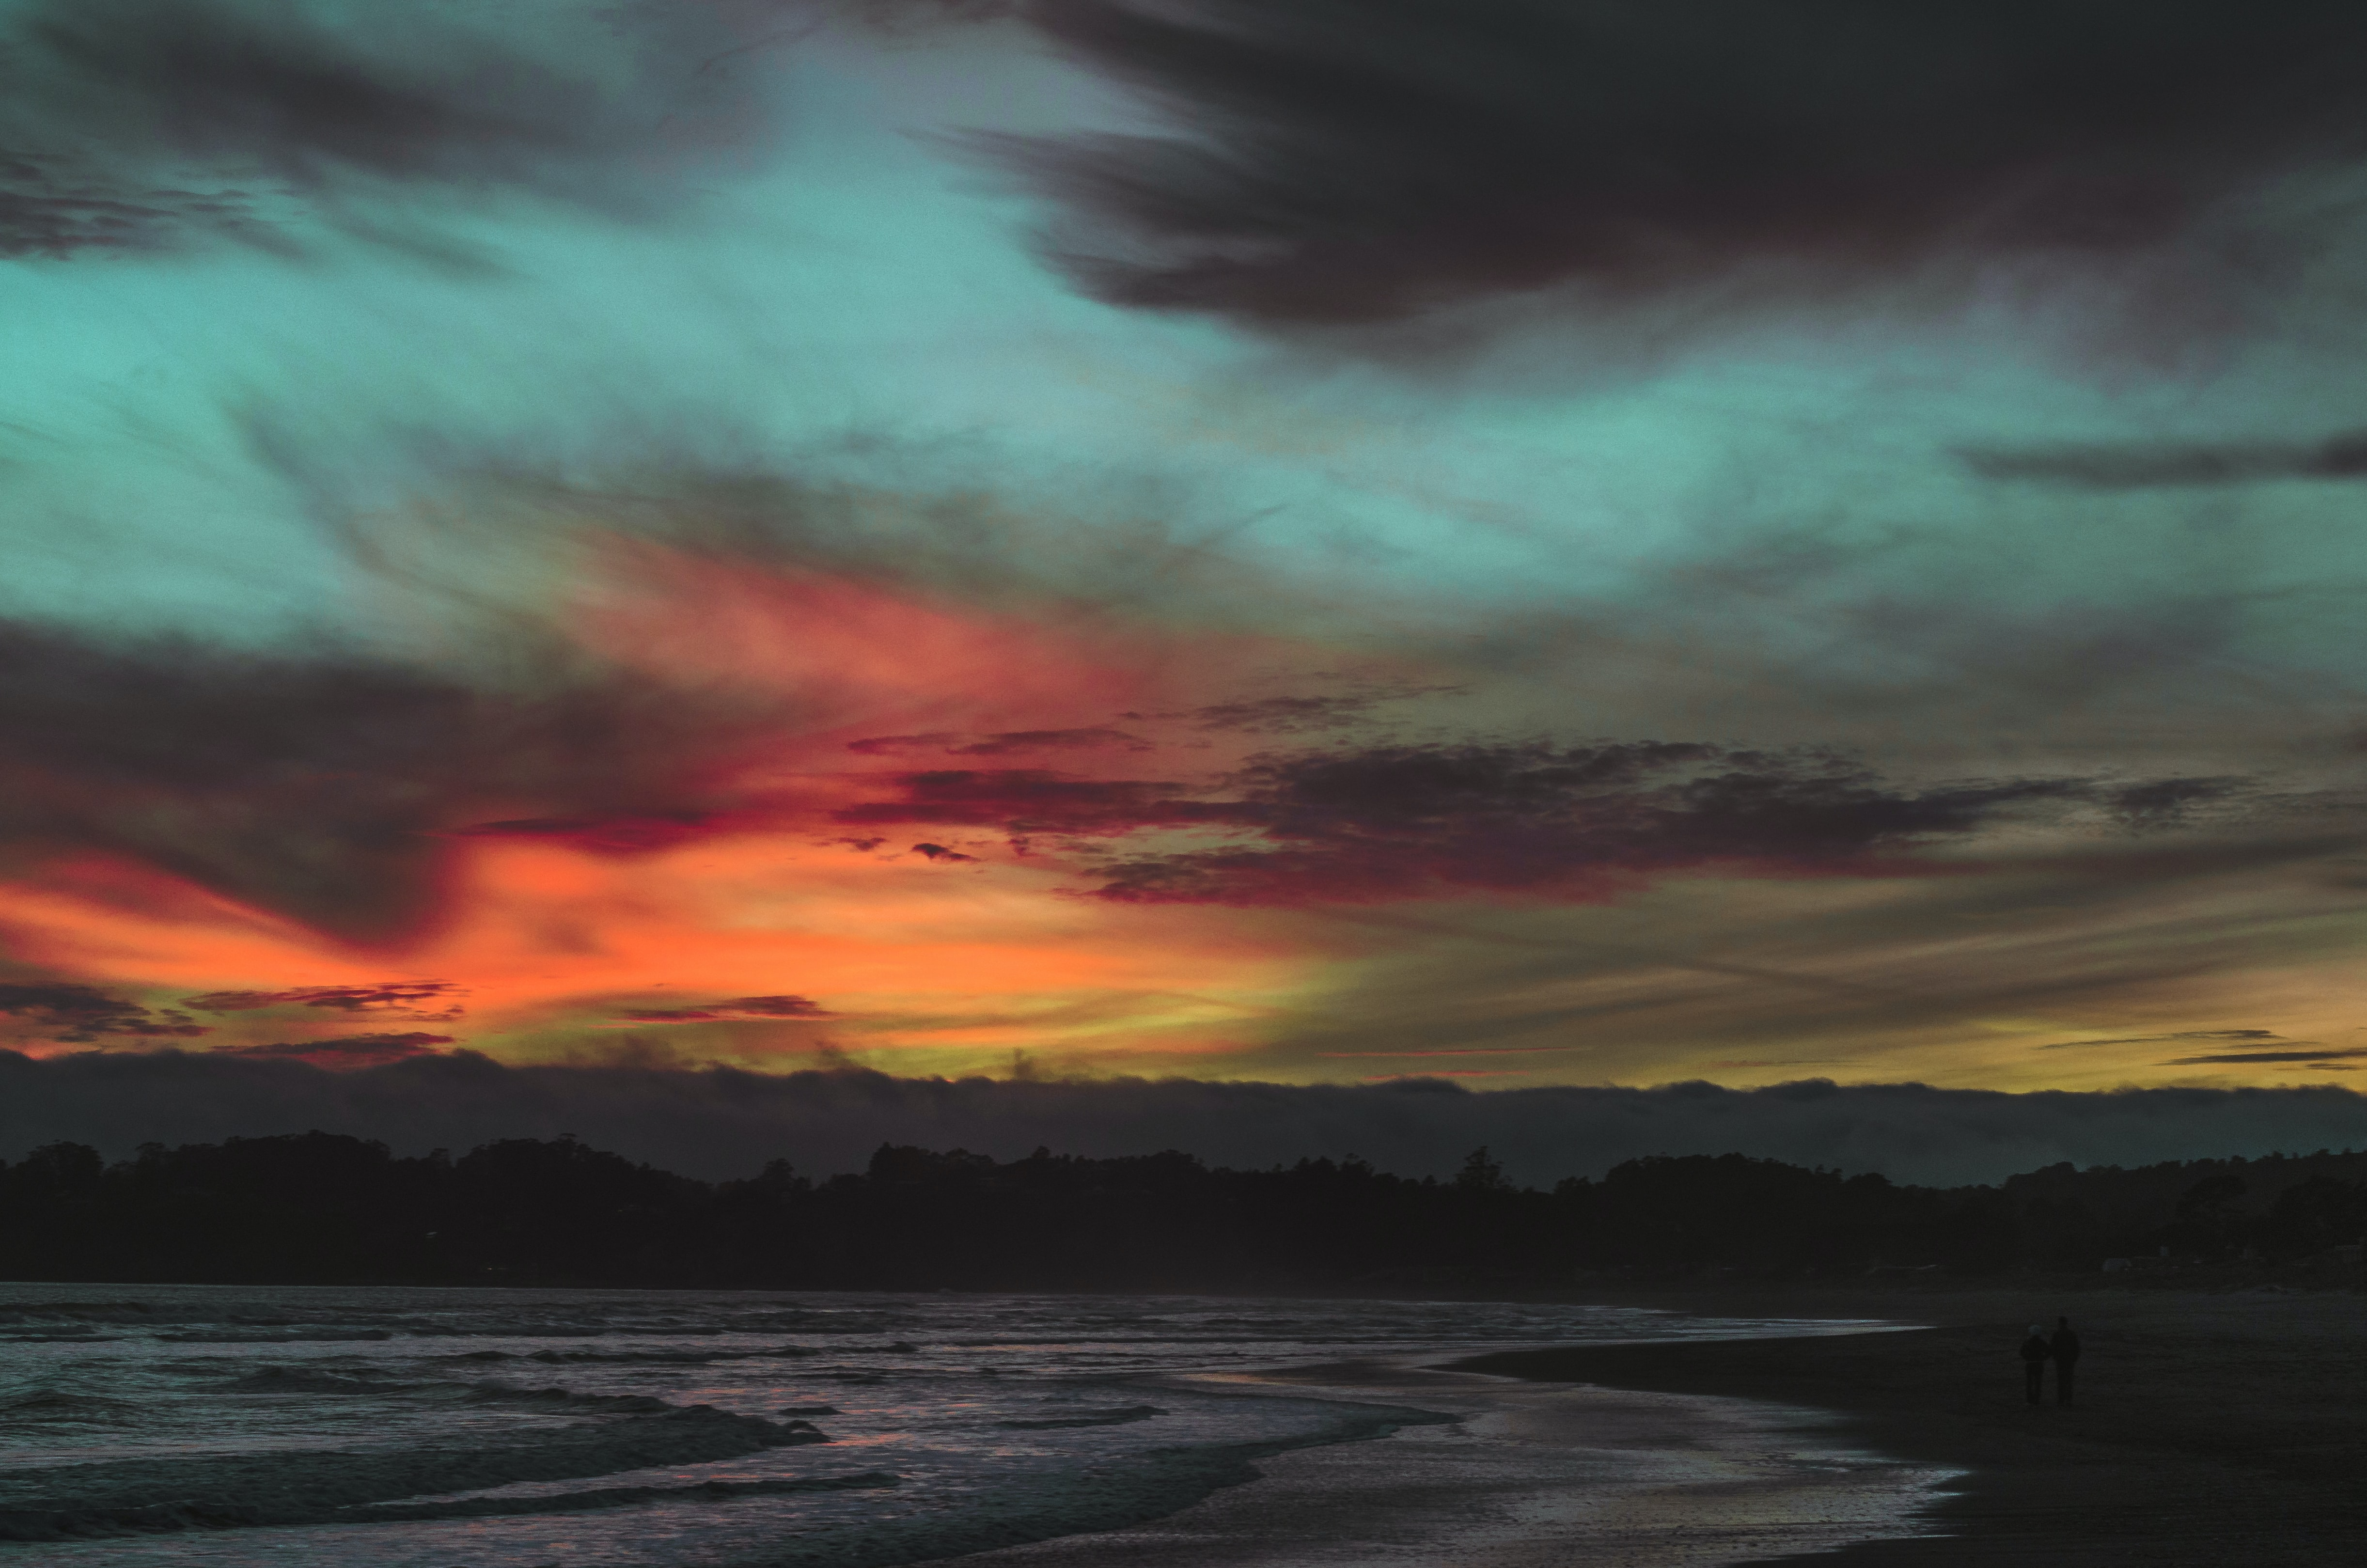 Colorful skies after sunset above the sand beach coastline at Stinson Beach